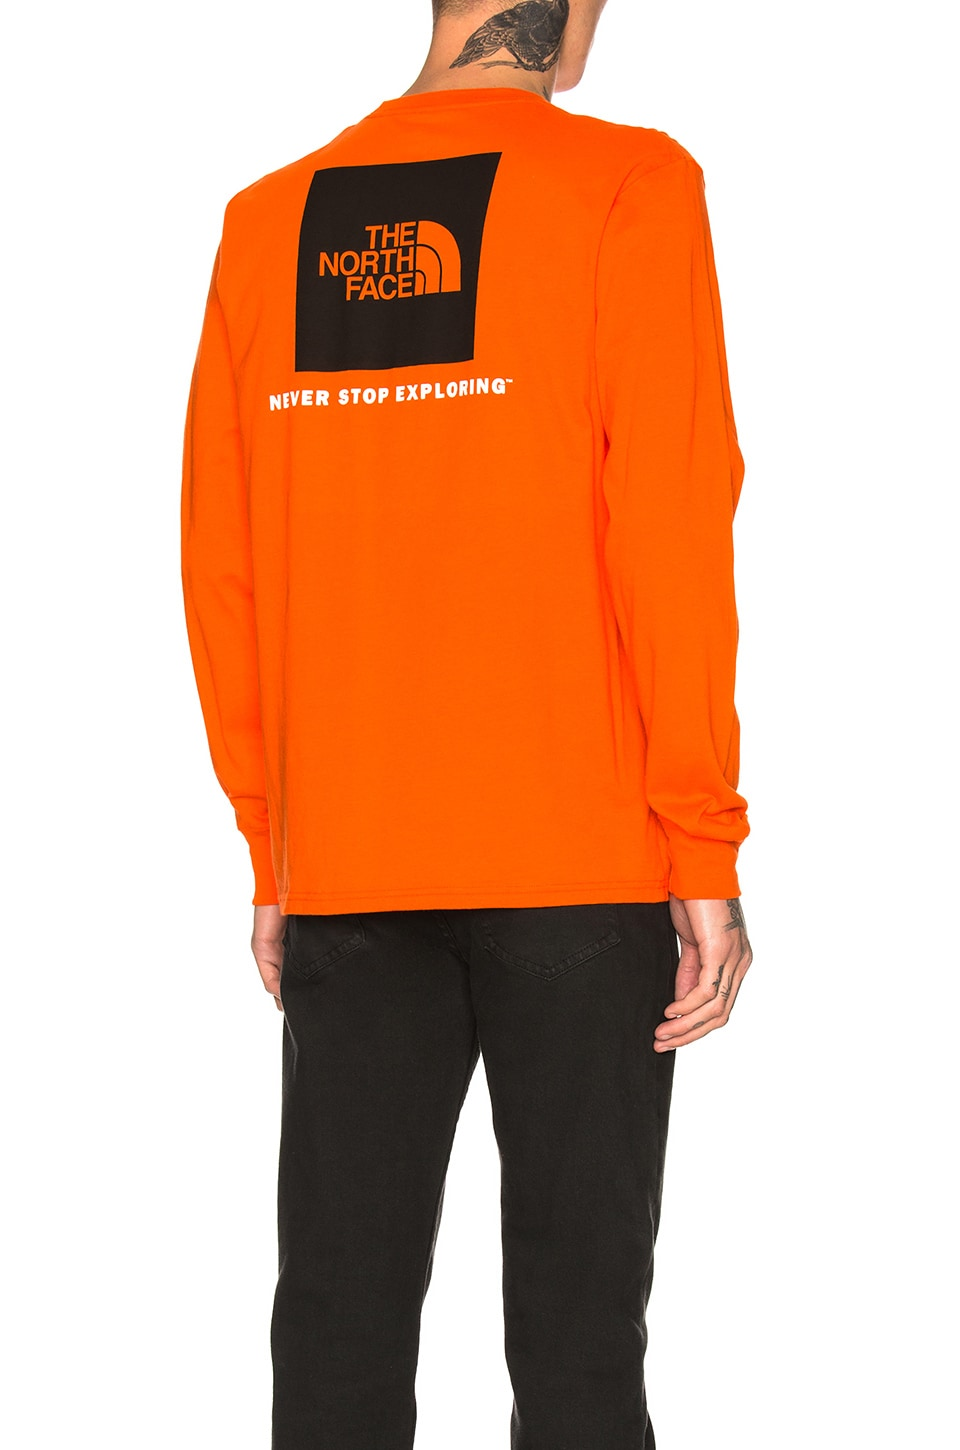 e0323d52d The North Face Long Sleeve Red Box Tee in Persian Orange & TNF Black ...